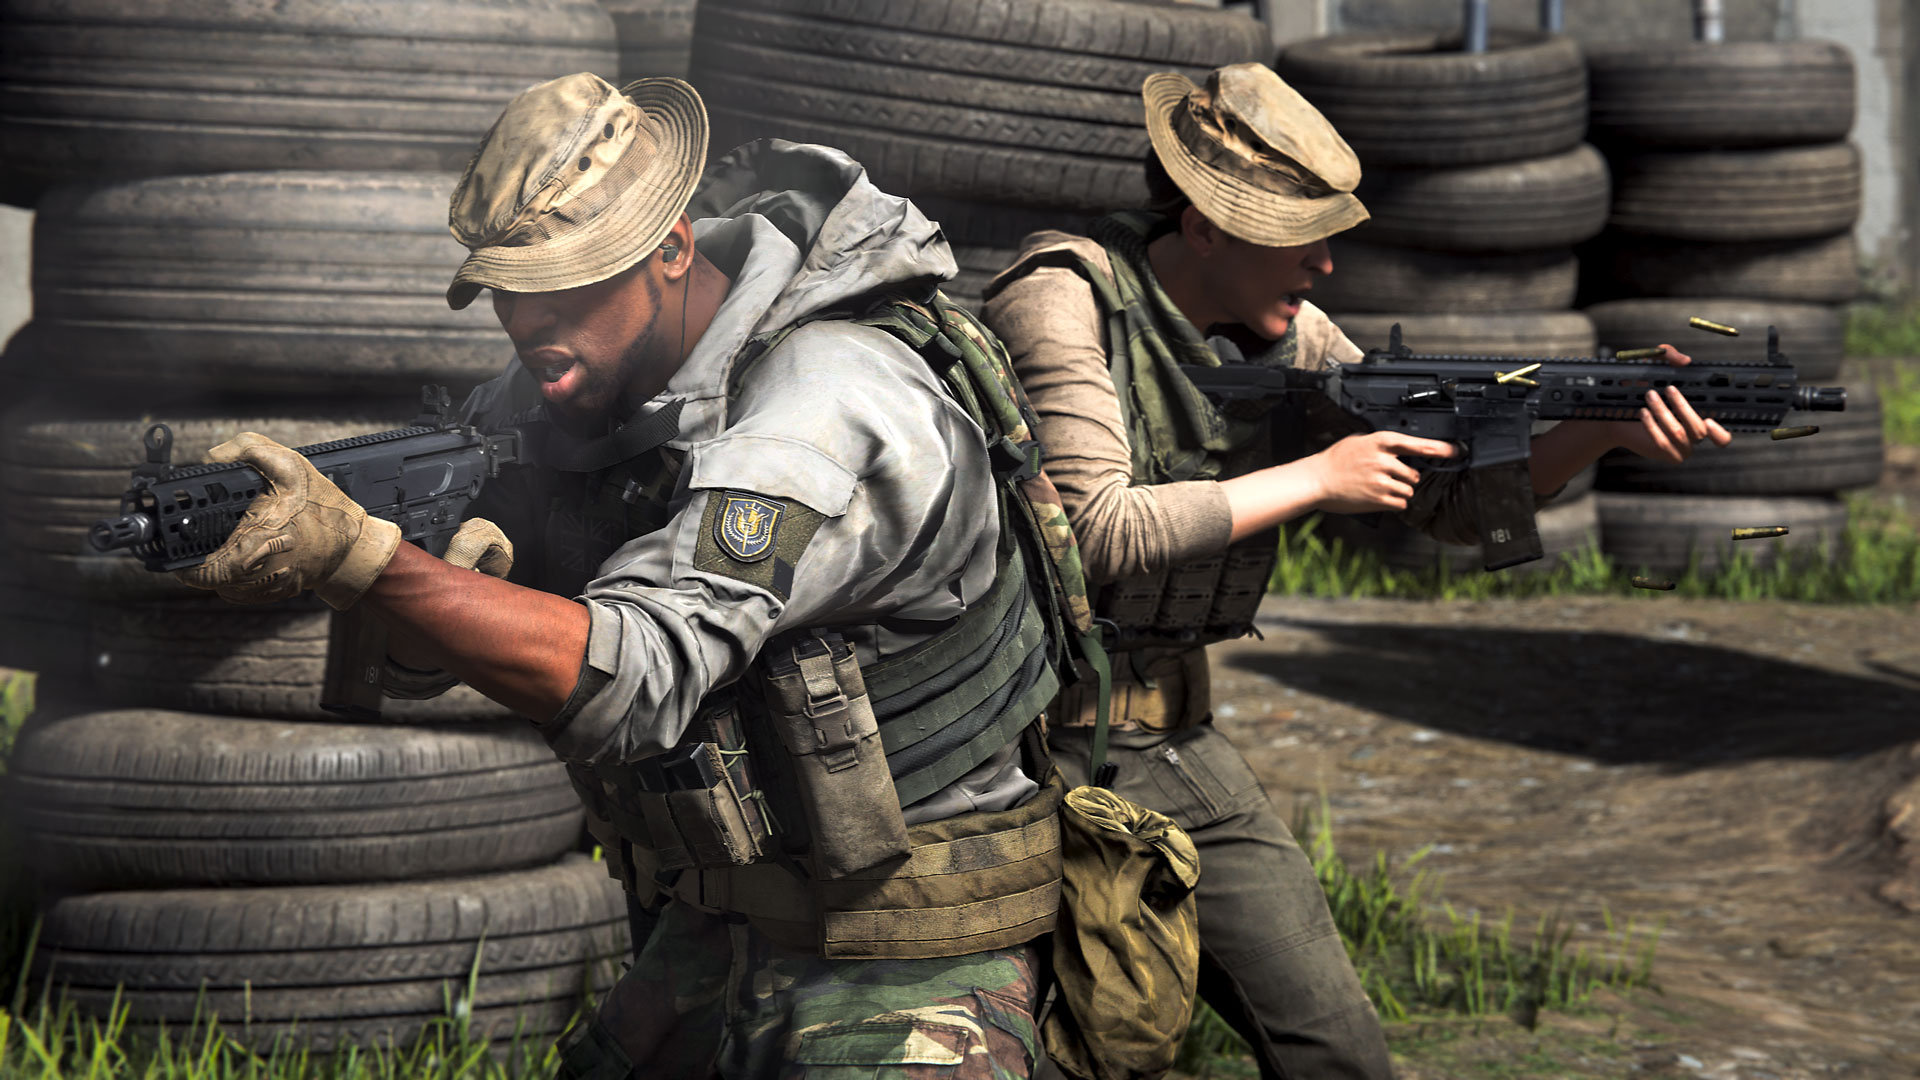 This Week in Call of Duty® - May 26 - Image 2